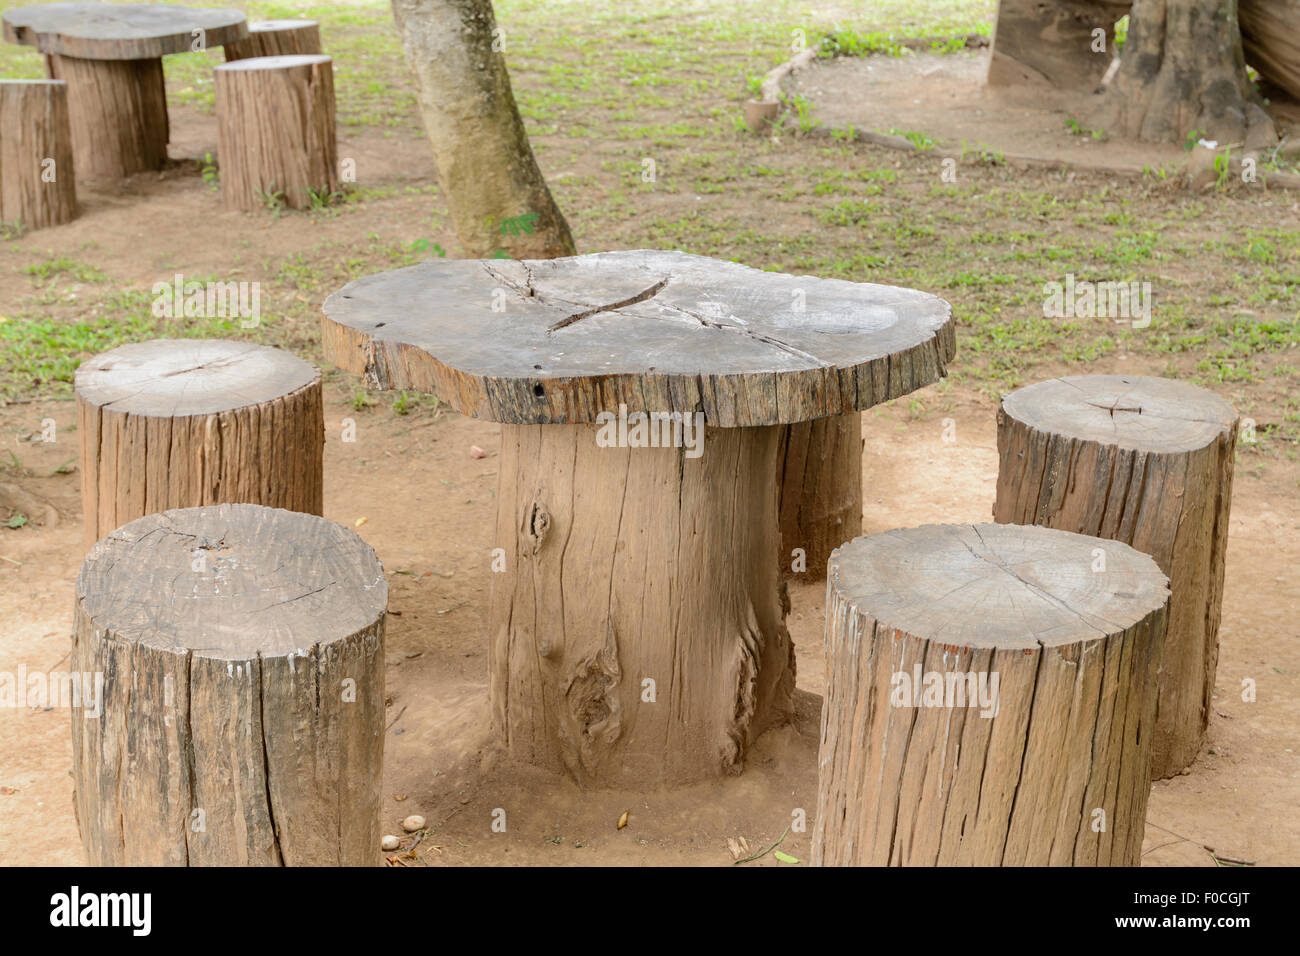 Exceptionnel Stump Chair And Wooden Table In The Garden   Stock Image